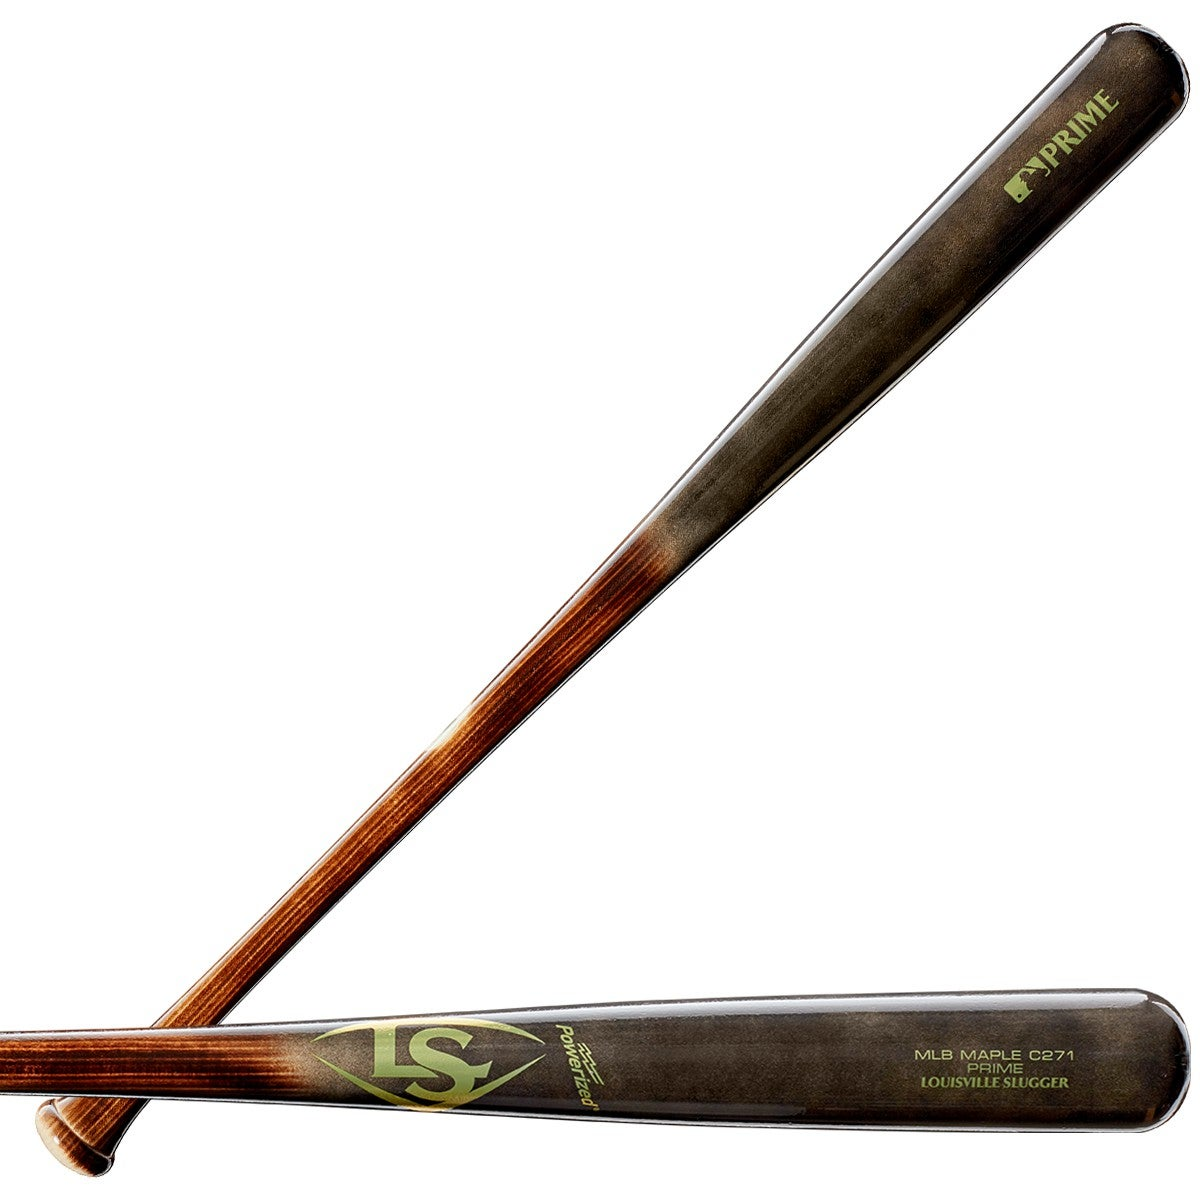 Mlb Prime Maple C271 High Roller Baseball Bat